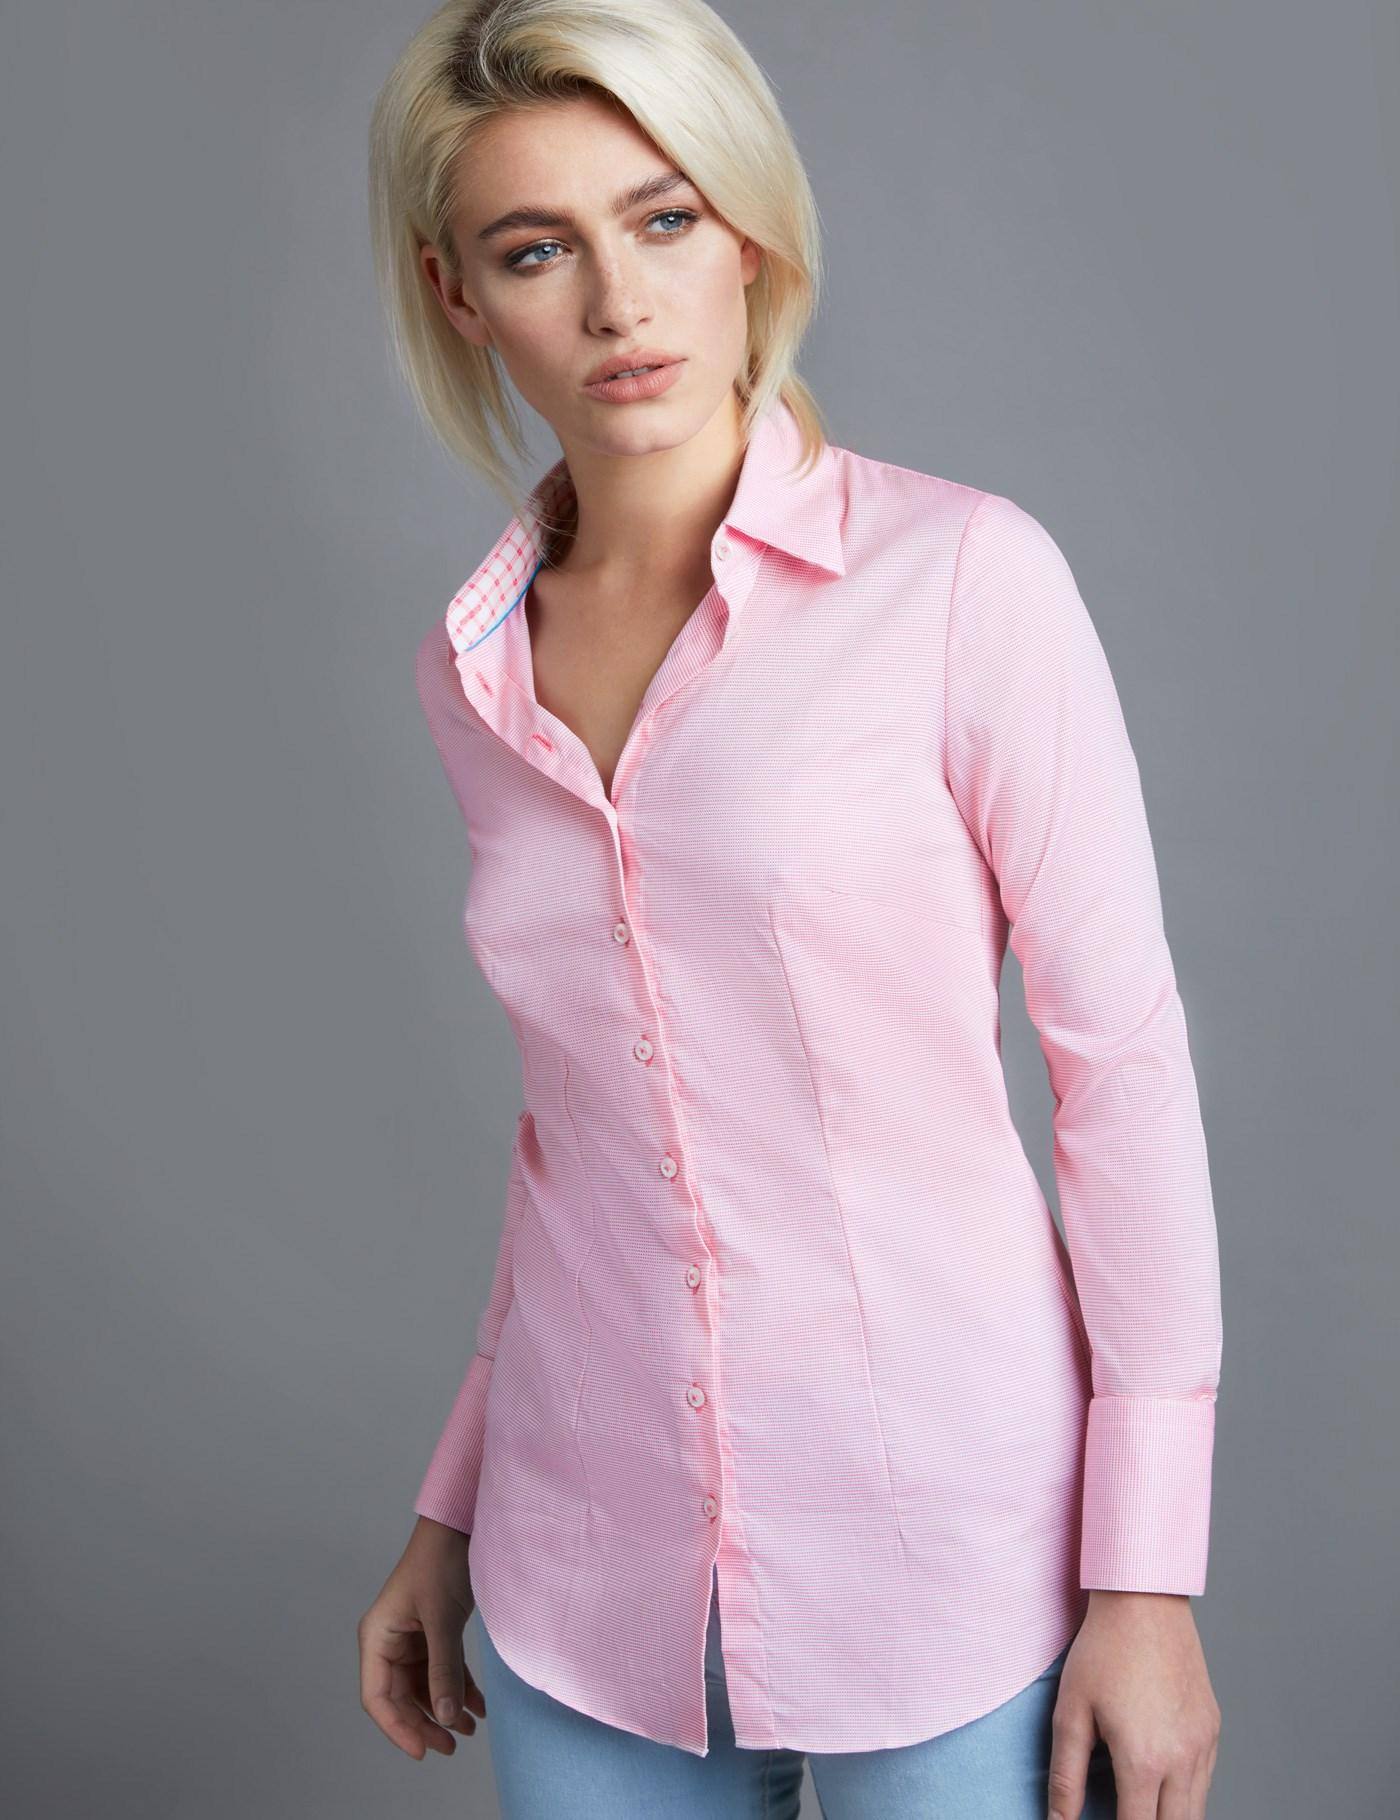 037bb7ab4cb4d0 Lyst - Hawes & Curtis Pink & White Dogstooth Check Fitted Shirt in Pink